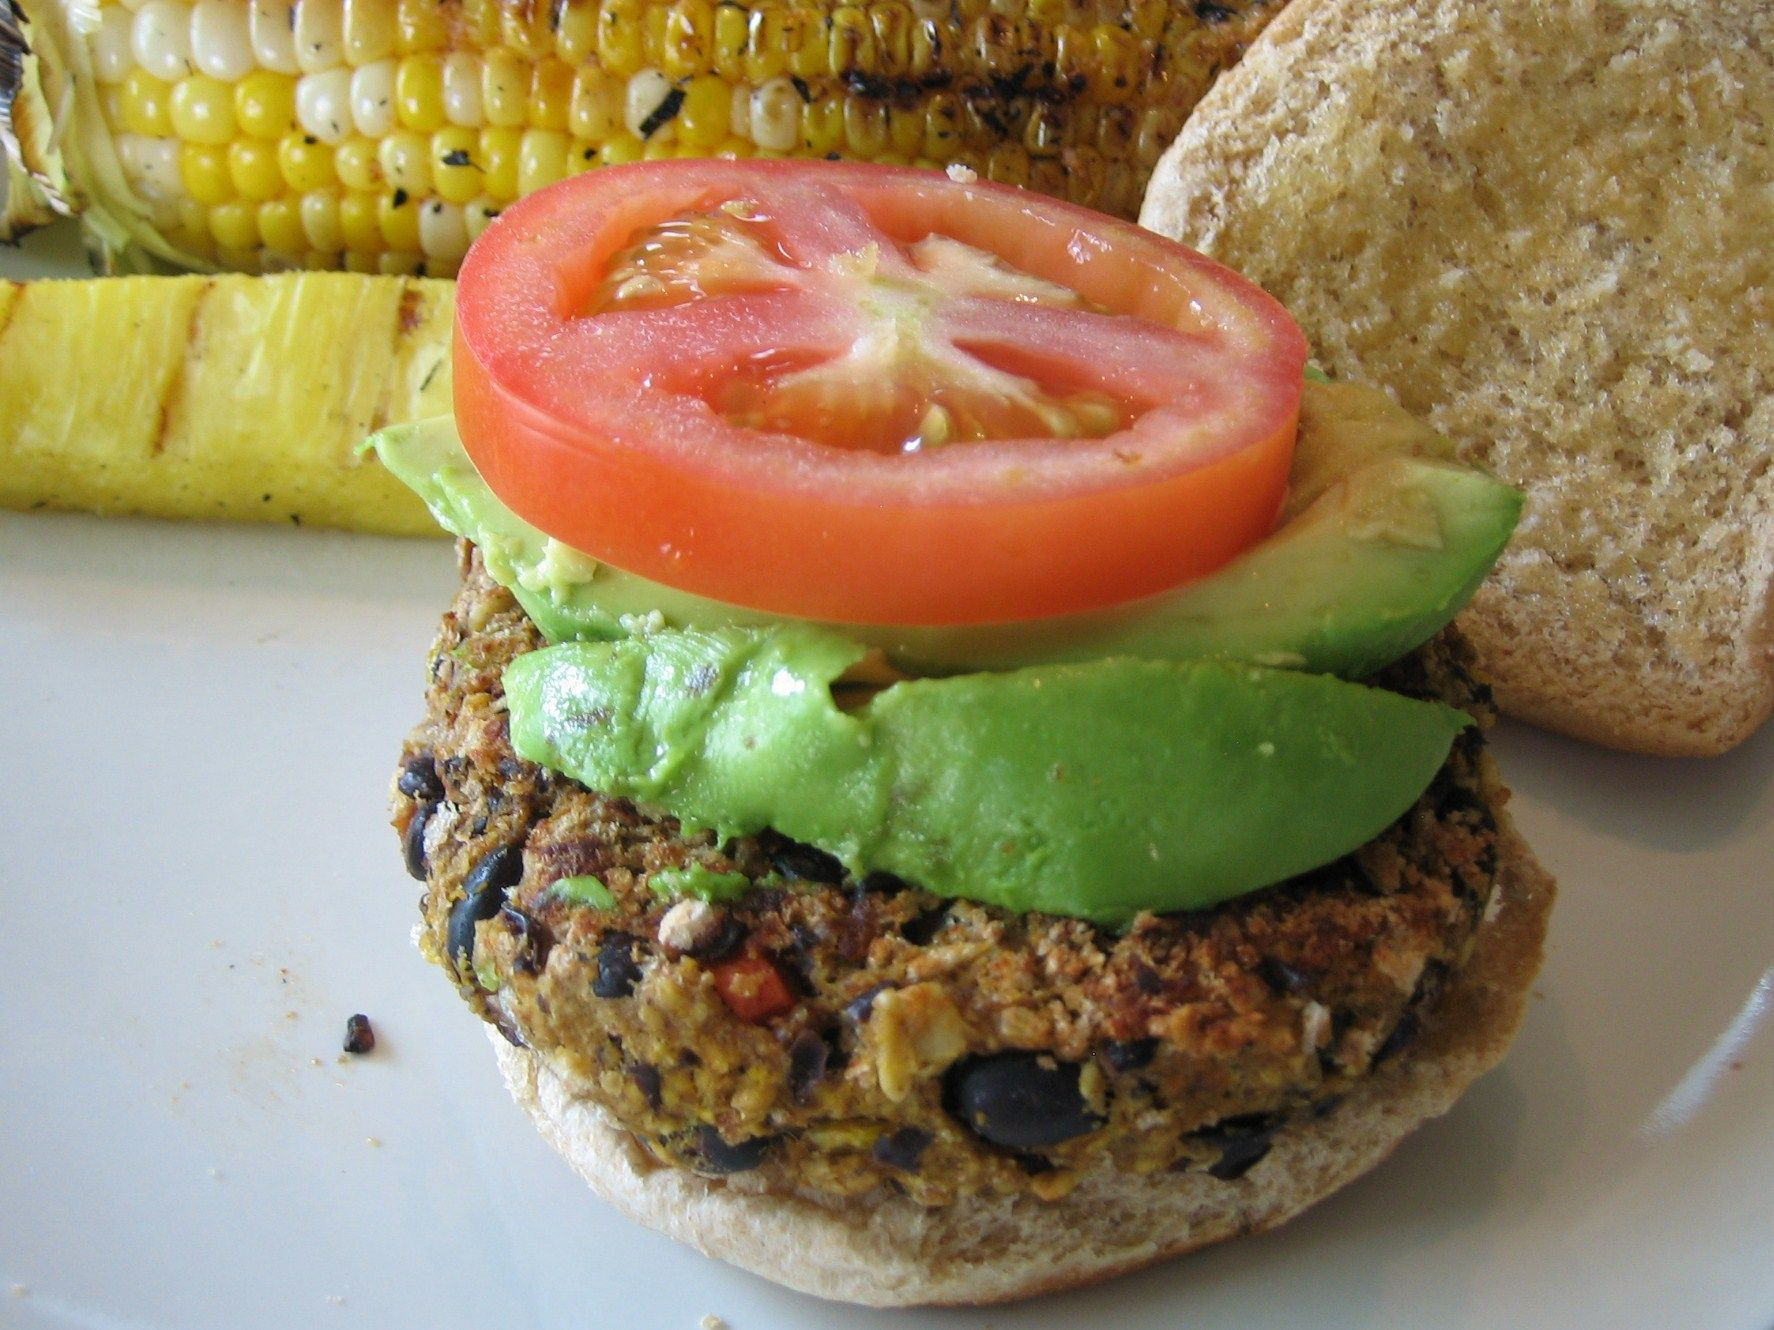 Sweet Potato Black Bean Burgers - finally a perfectly cooked thick veggie burger that really satisfies. The secret--coating in panko bread crumbs, pan frying, then baking.